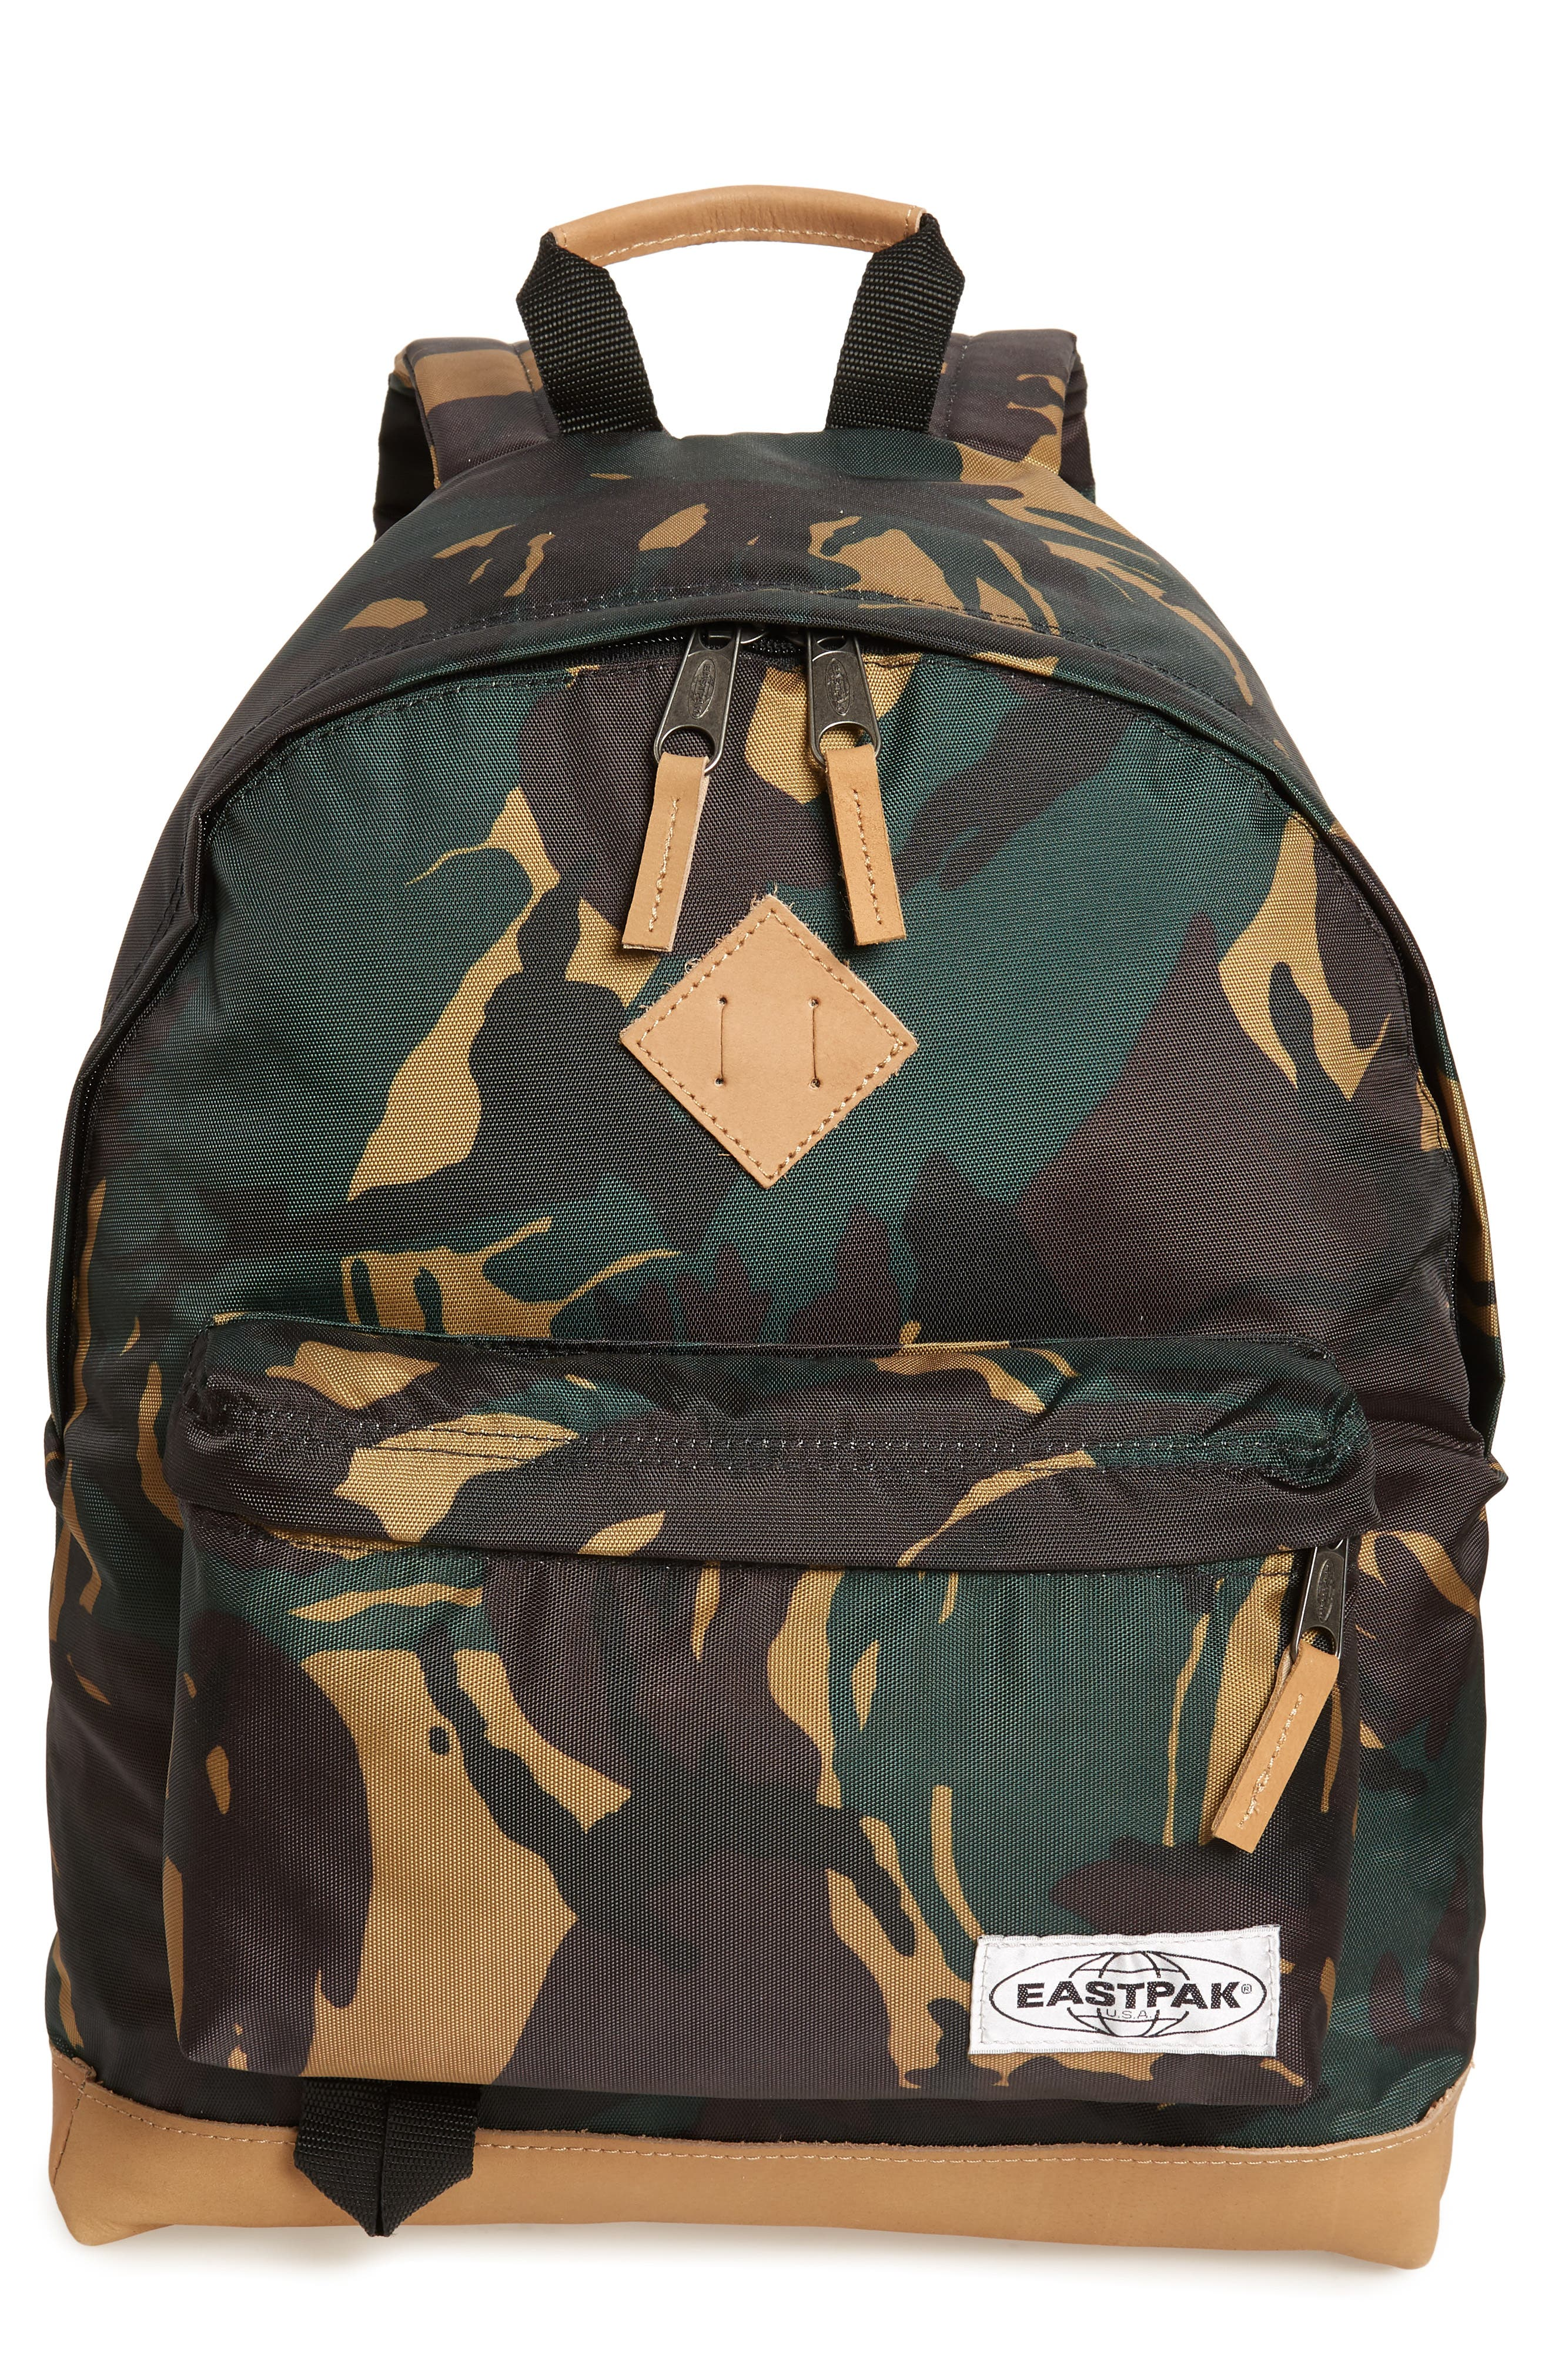 WYOMING BACKPACK - BROWN